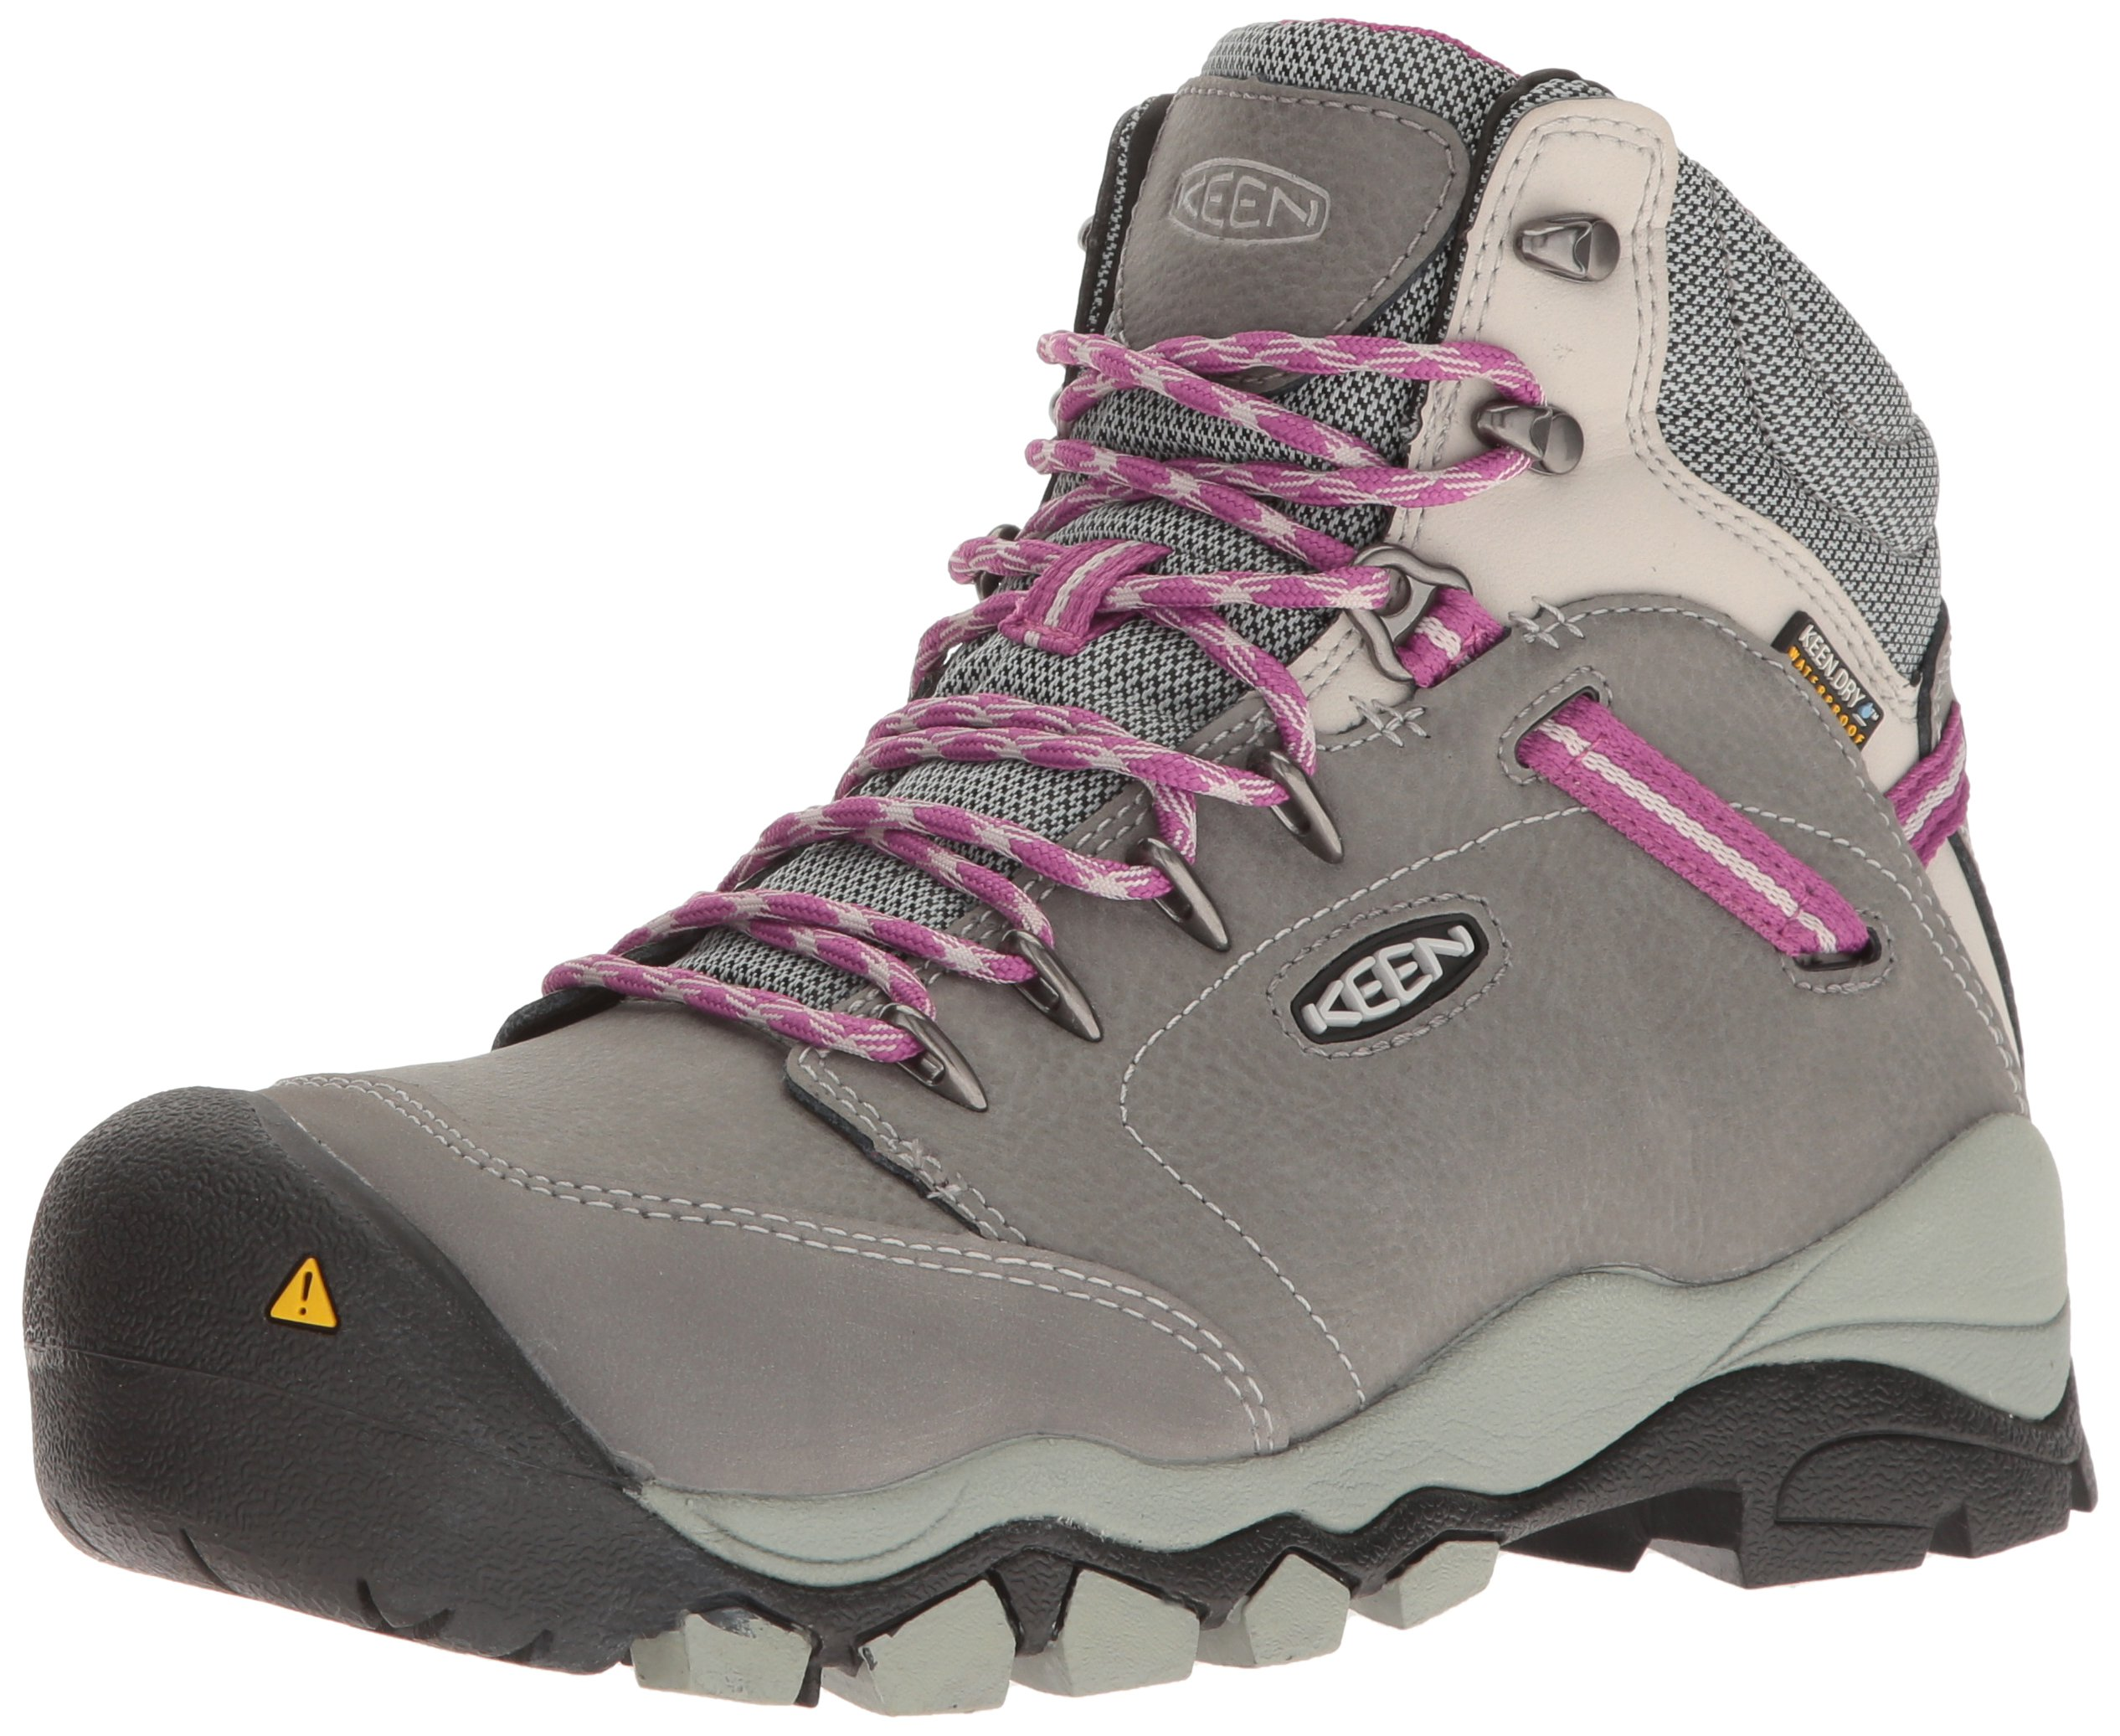 Keen Utility Women's Canby AT Waterproof Industrial and Construction Shoe, Gargoyle/Vapor, 8.5 M US